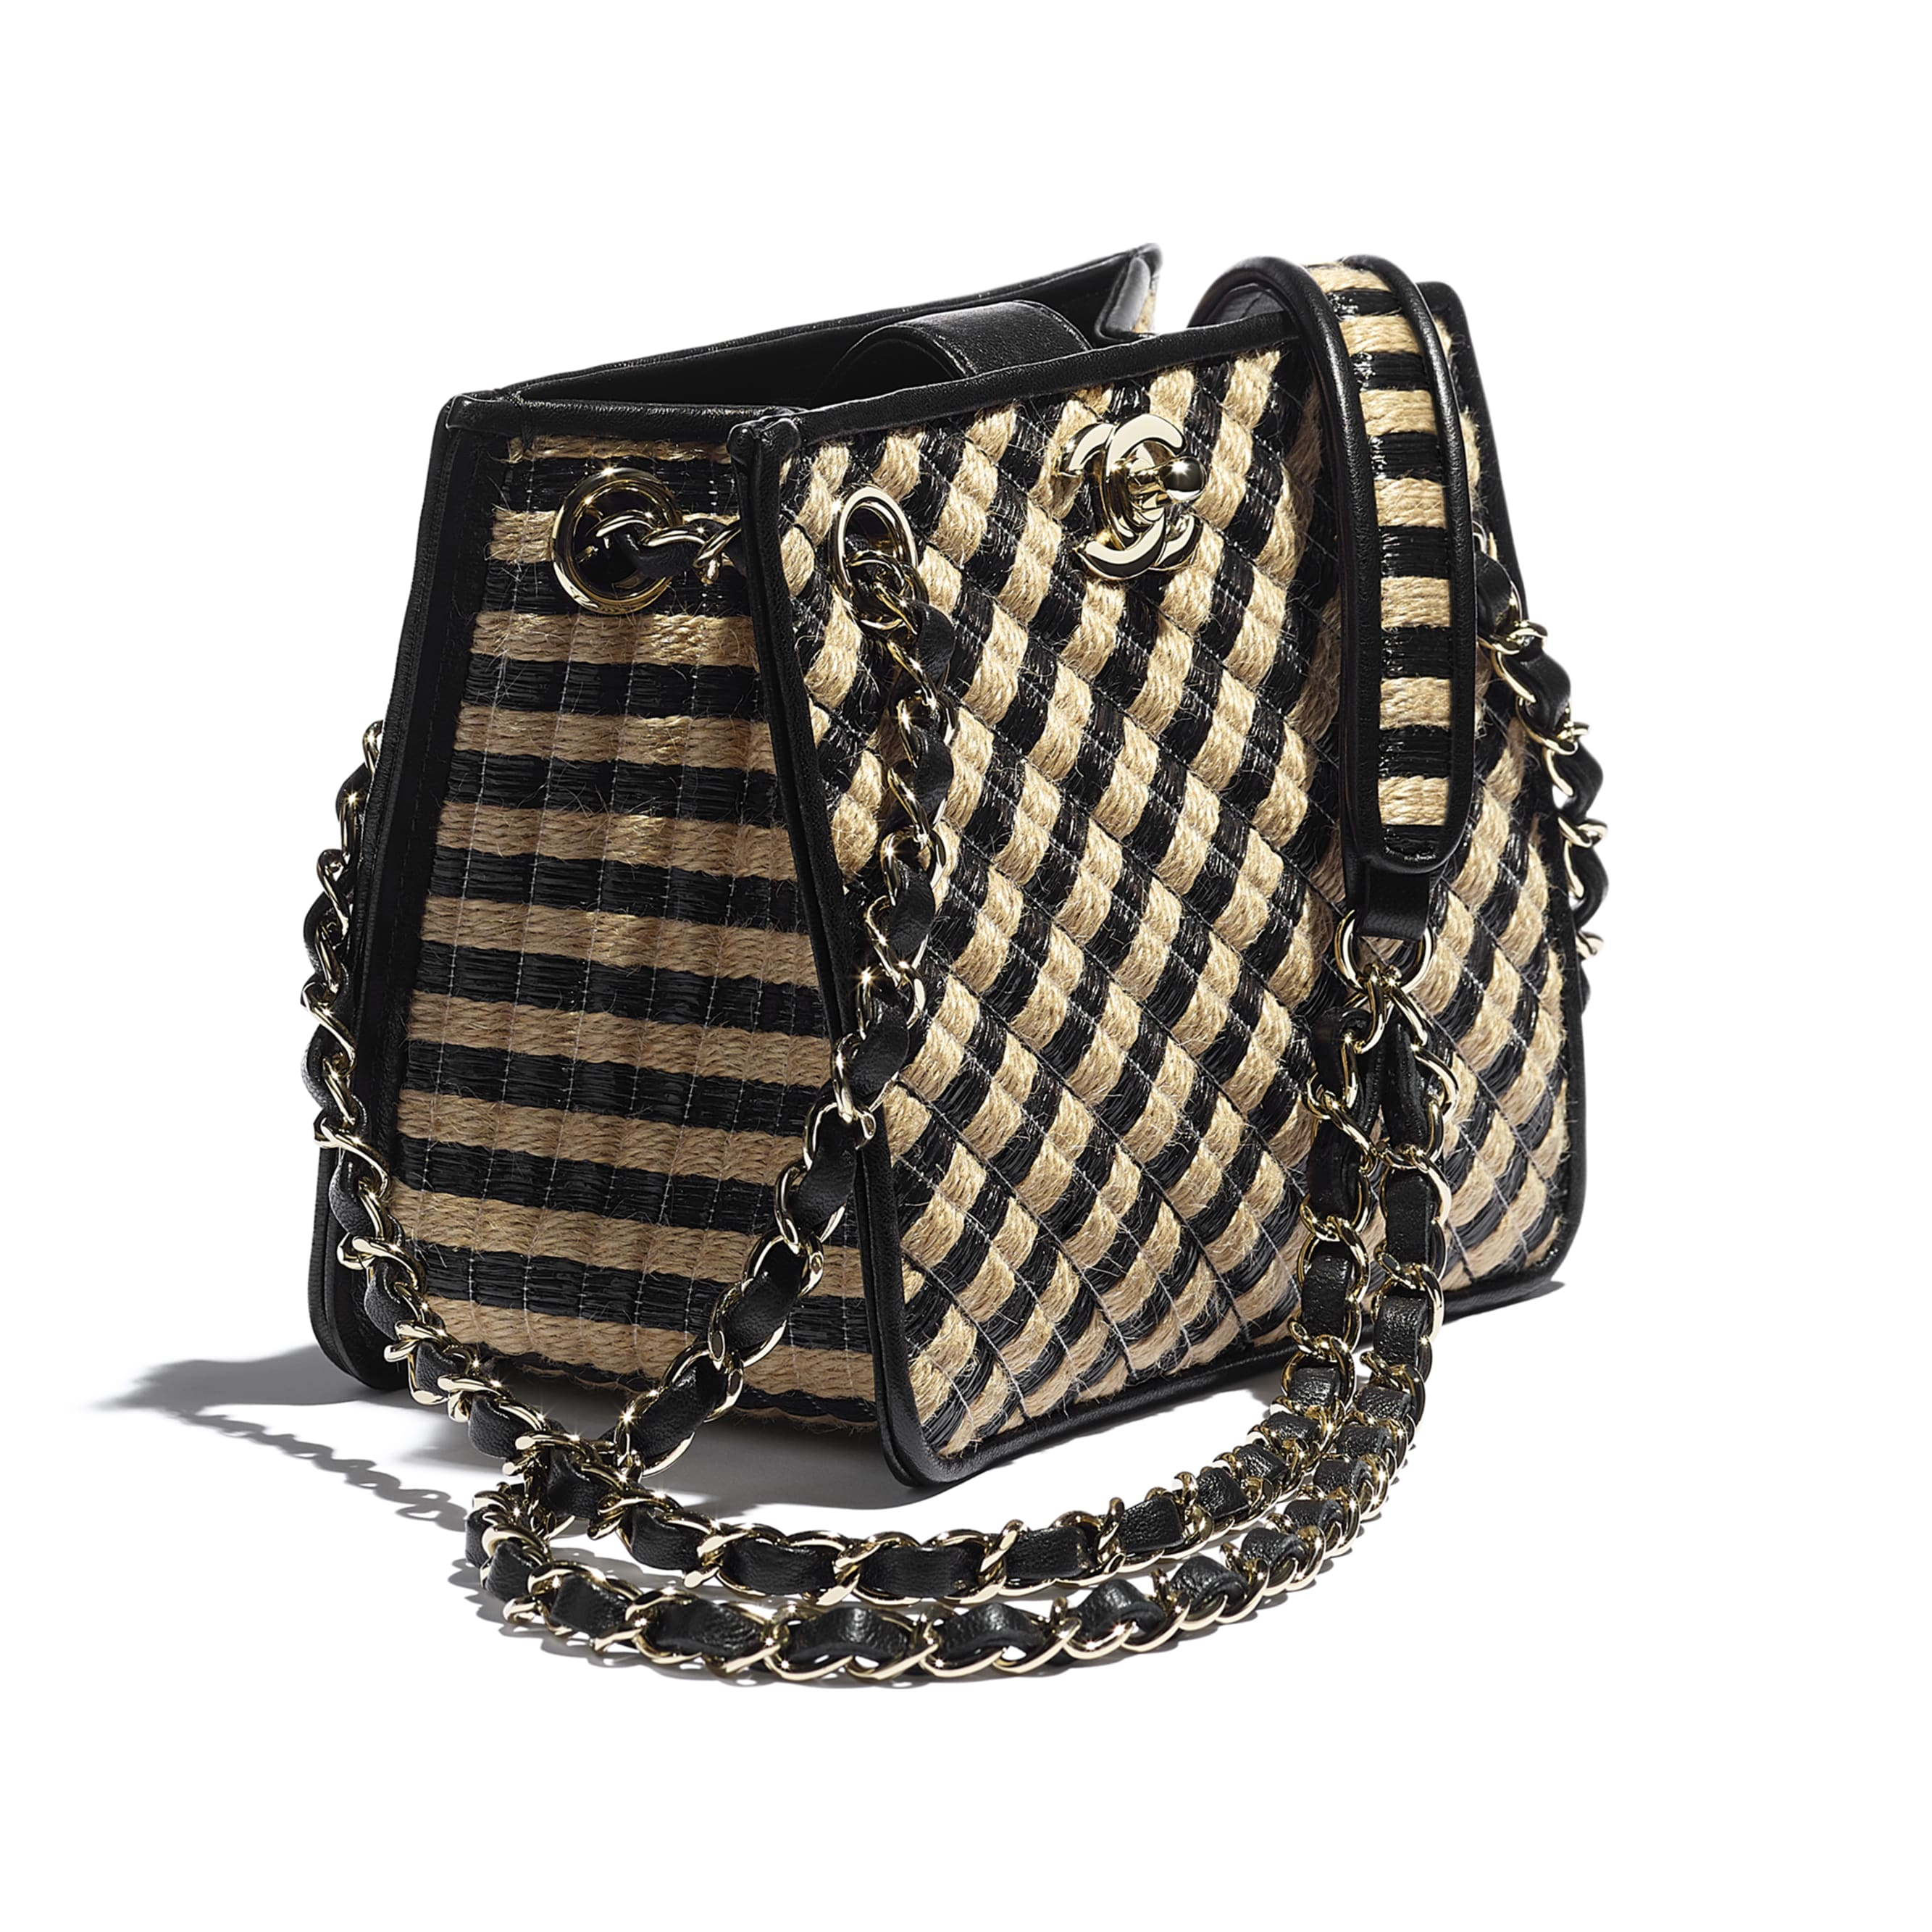 Drawstring Bag - Black & Beige - Raffia, Jute Thread & Gold-Tone Metal - CHANEL - Extra view - see standard sized version